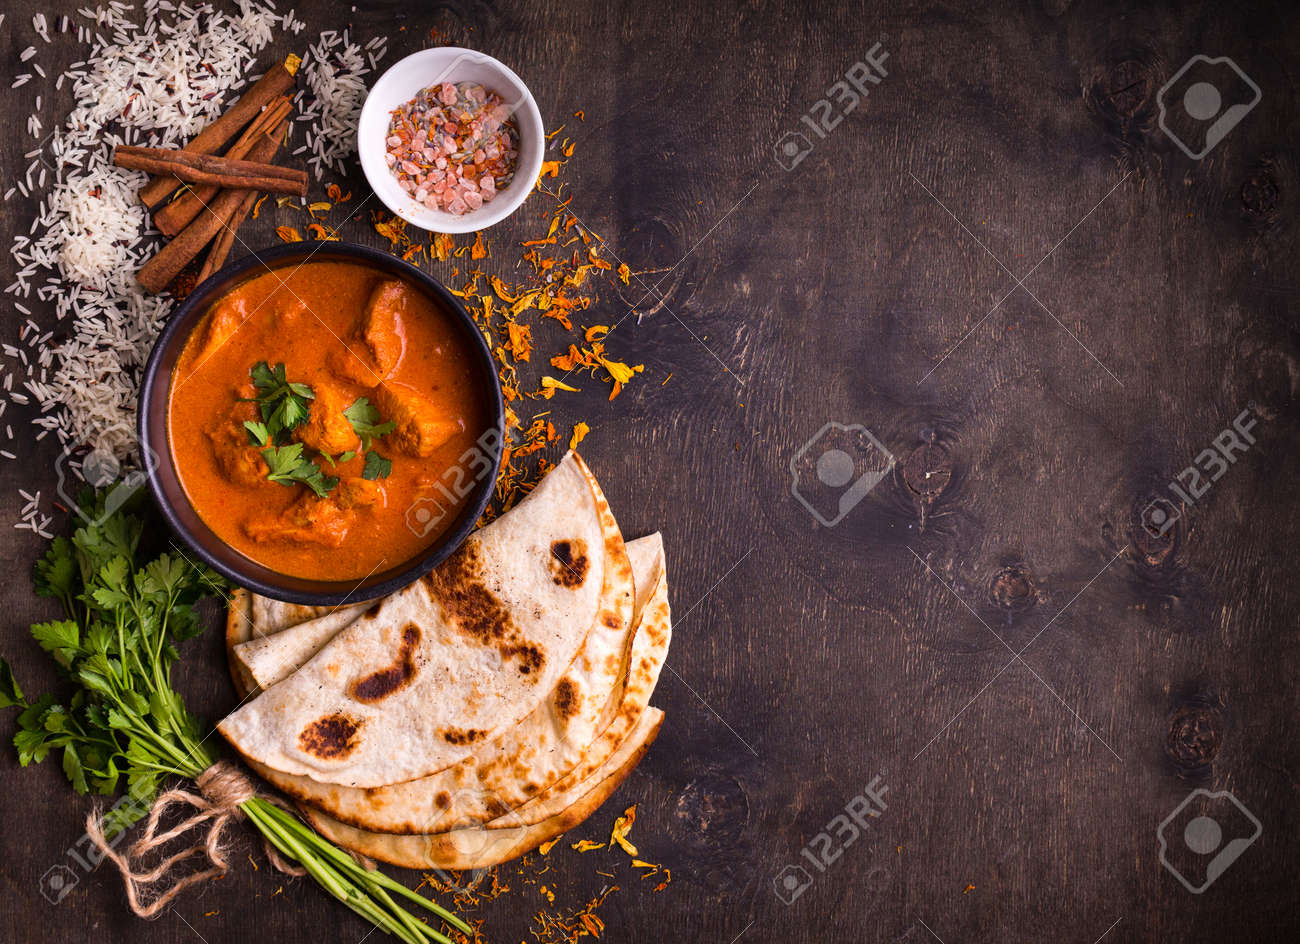 Spicy chicken tikka masala in bowl on rustic wooden background. With rice, indian naan butter bread, spices, herbs. Space for text. Traditional Indian/British dish. Top view. Indian food. Copy space - 76010848